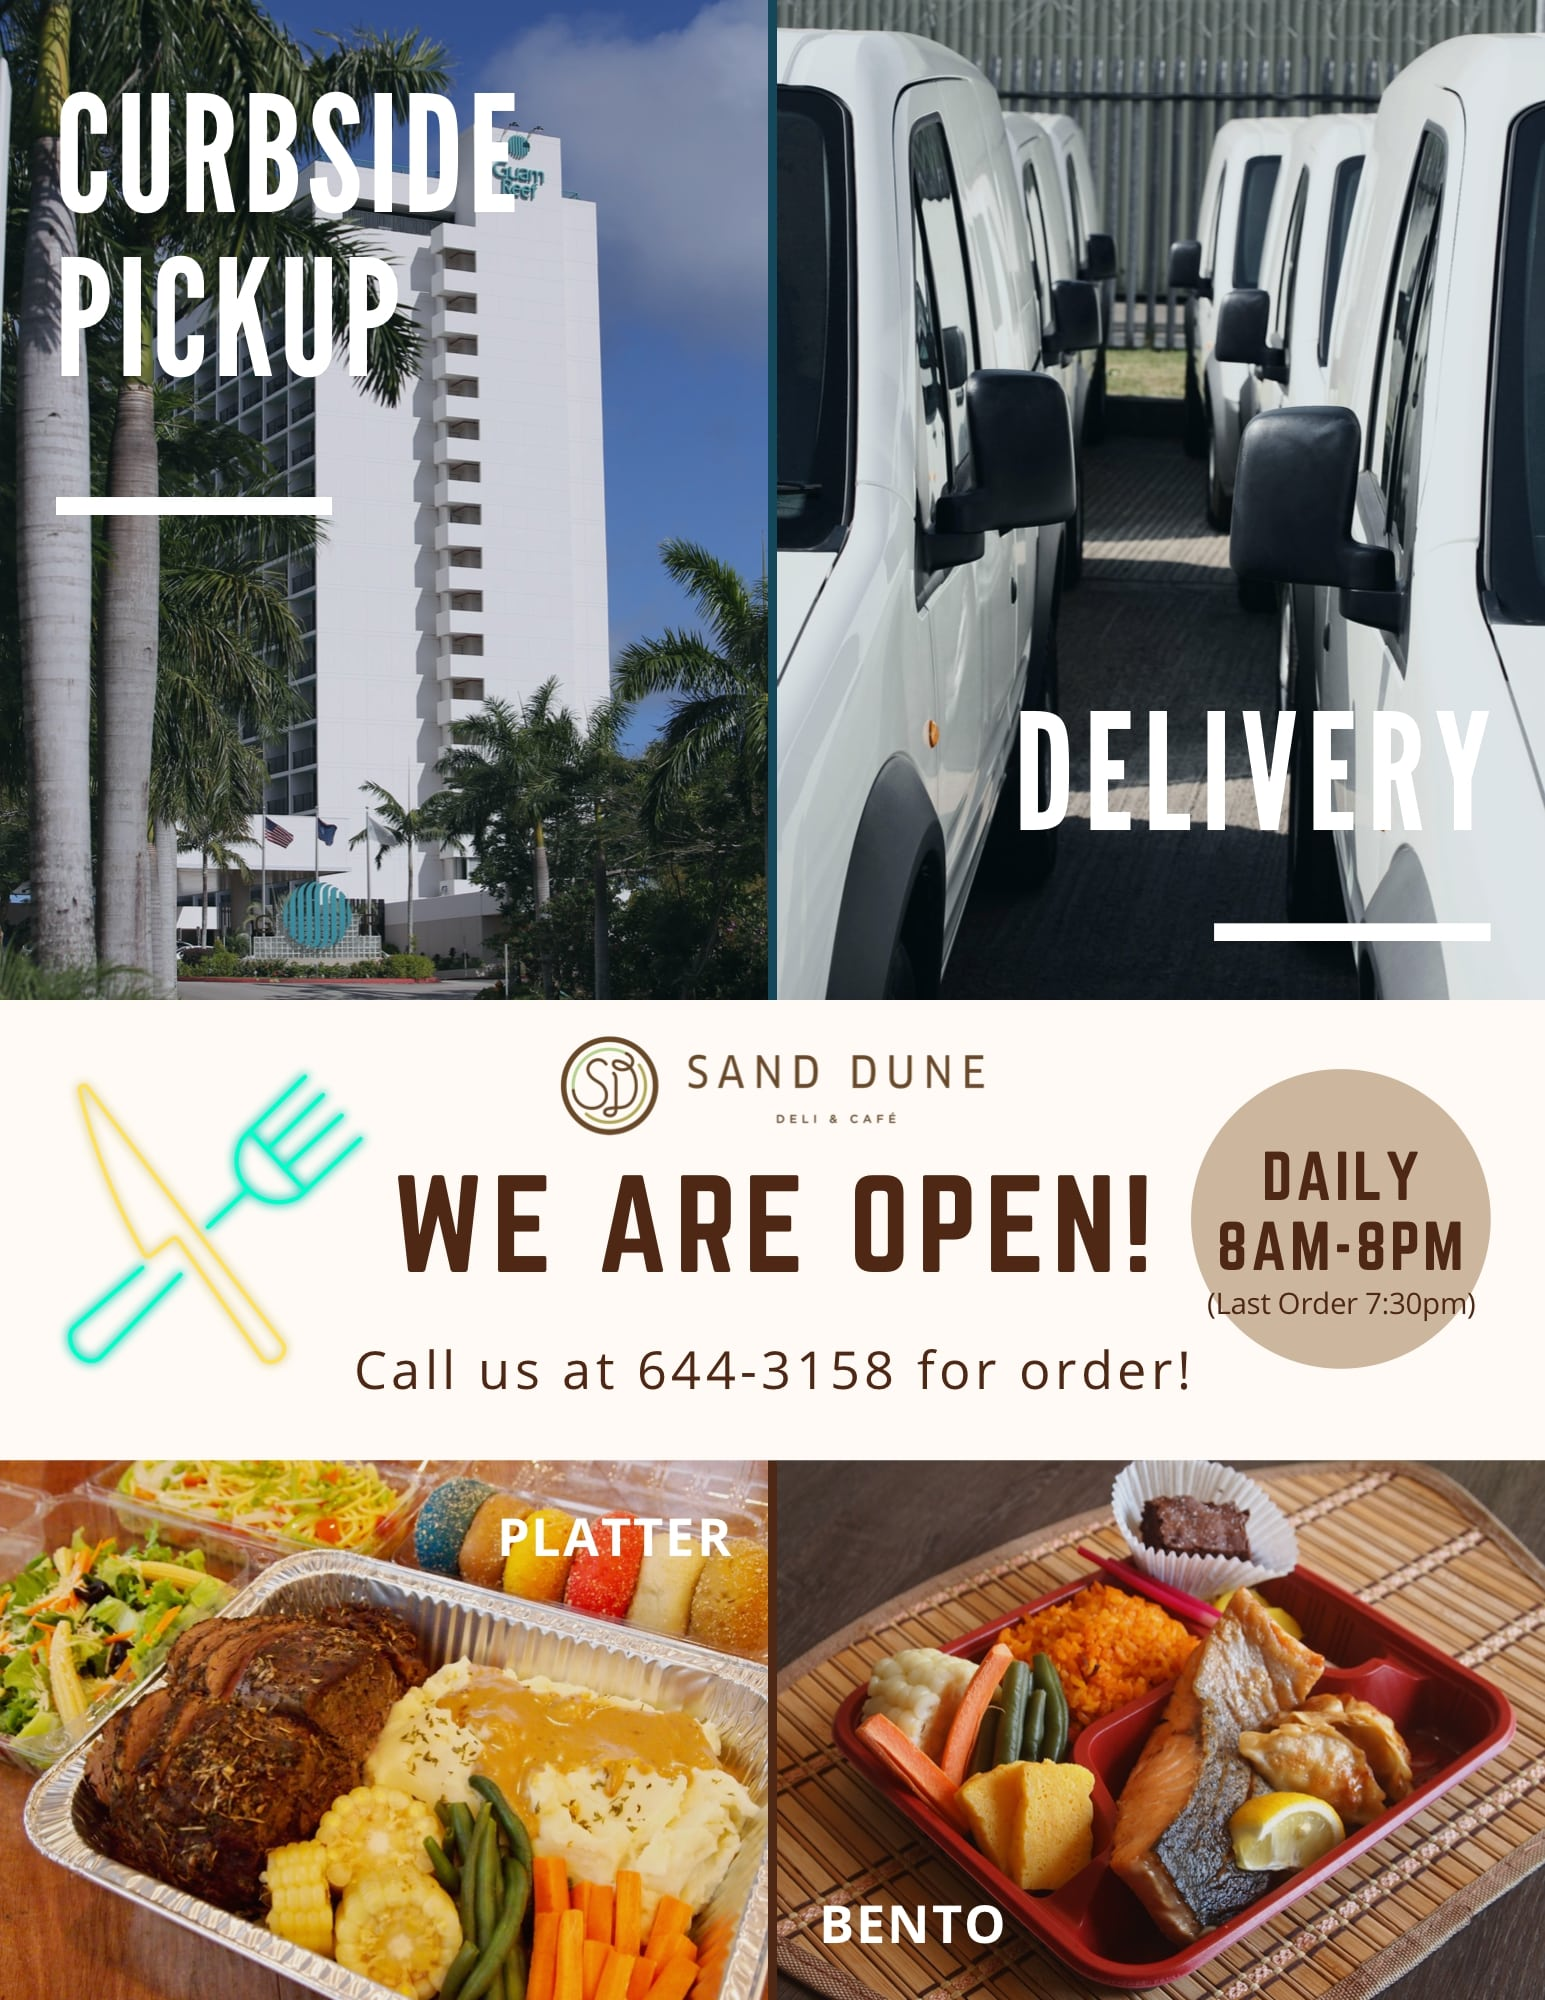 【Sand Dune】Open for Curbside Pickup & Delivery!